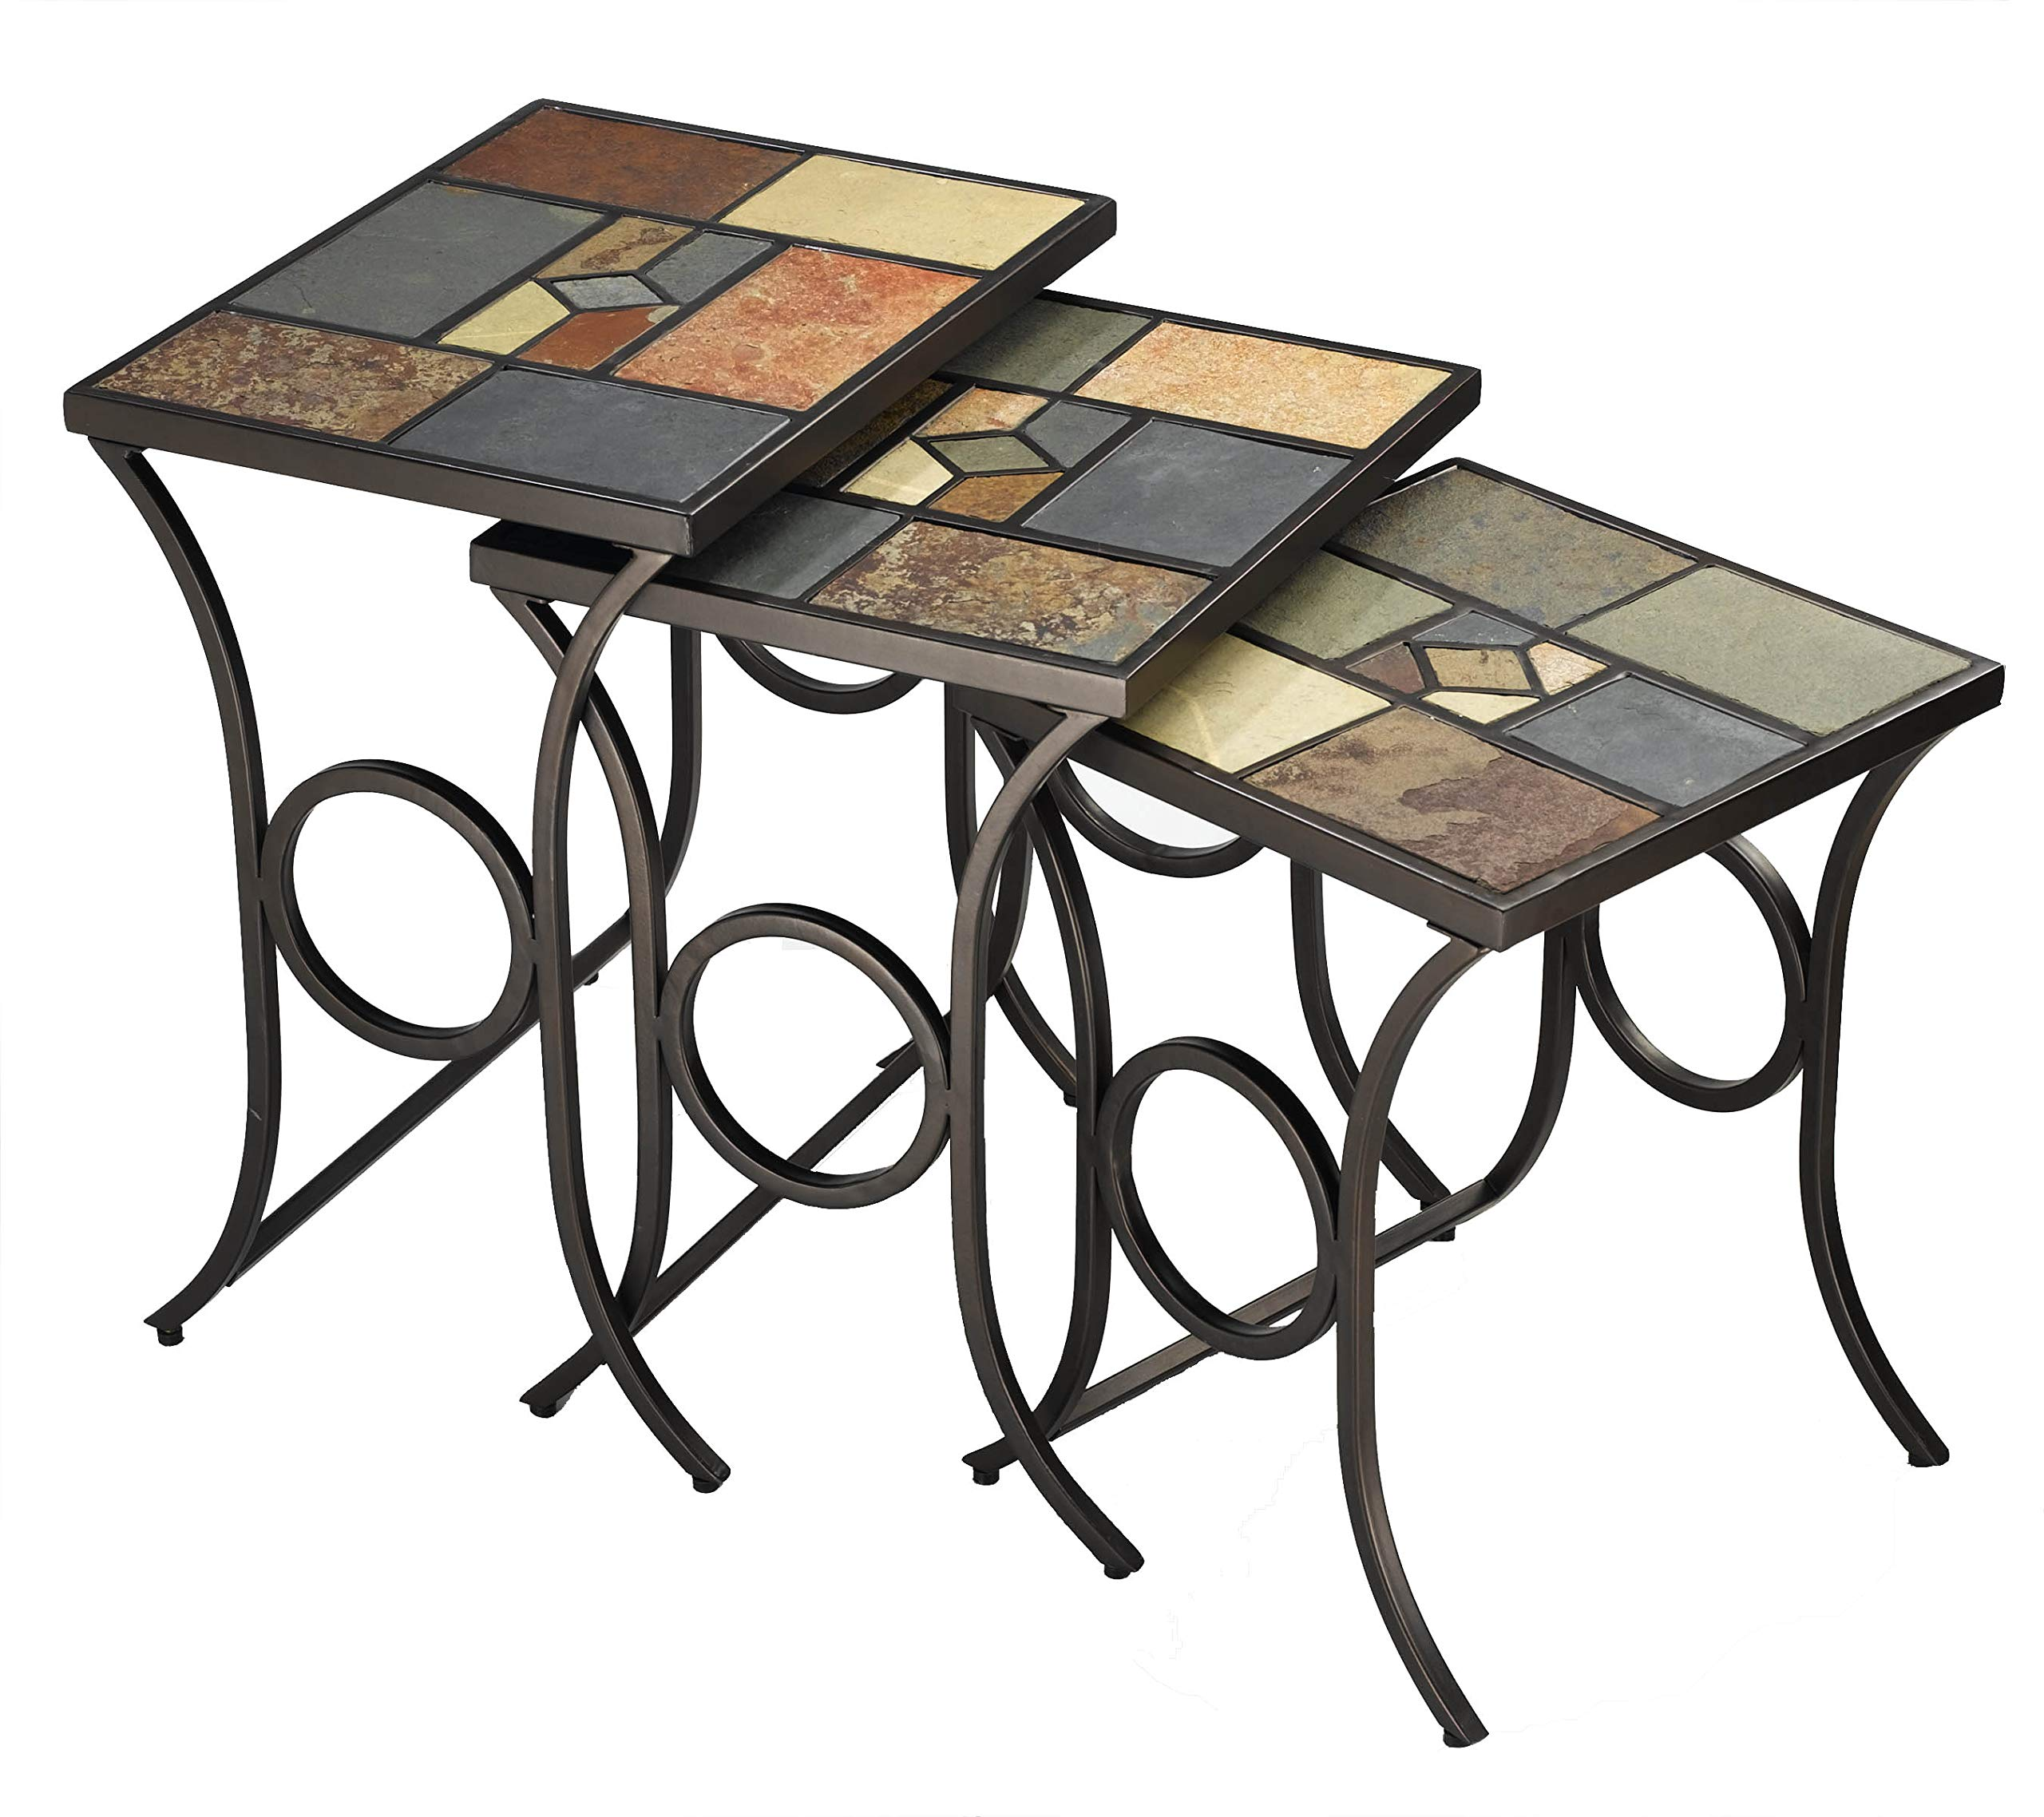 Hillsdale Furniture Pompeii Nesting Tables, Black gold metal with slate mosaic by Hillsdale Furniture